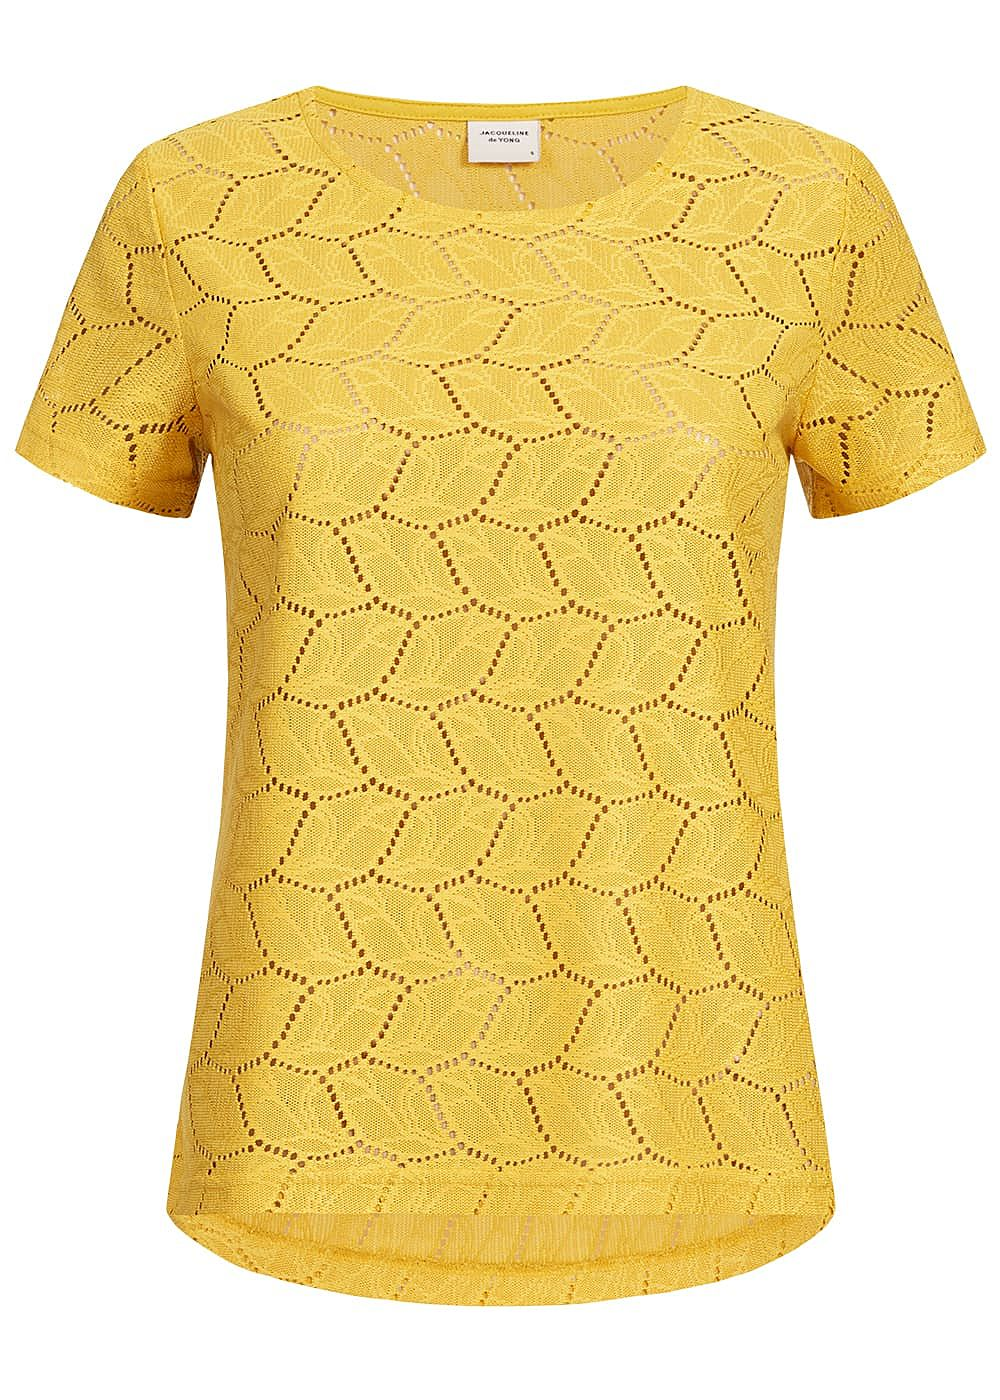 frische Stile innovatives Design professioneller Verkauf JDY by ONLY Damen T-Shirt Cut Out NOOS mustard gelb